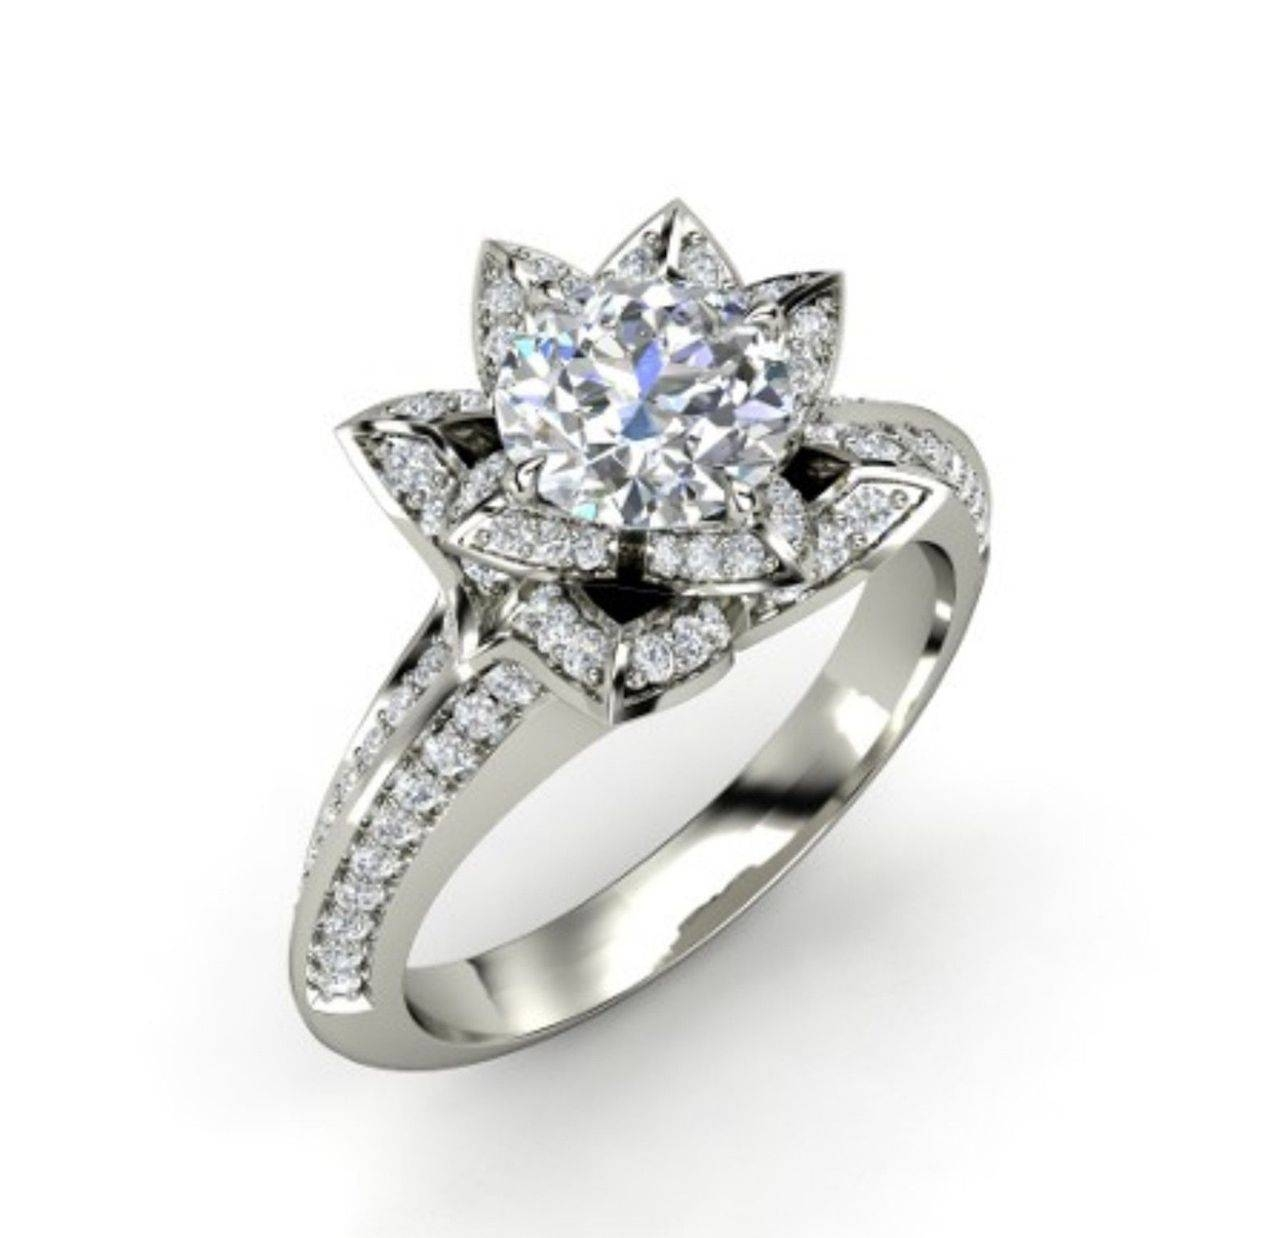 Sapphire Studios 'aspen' 2.10Ct Flower White, Yellow Or Rose With Regard To White Gold Engagement Rings (Gallery 4 of 15)